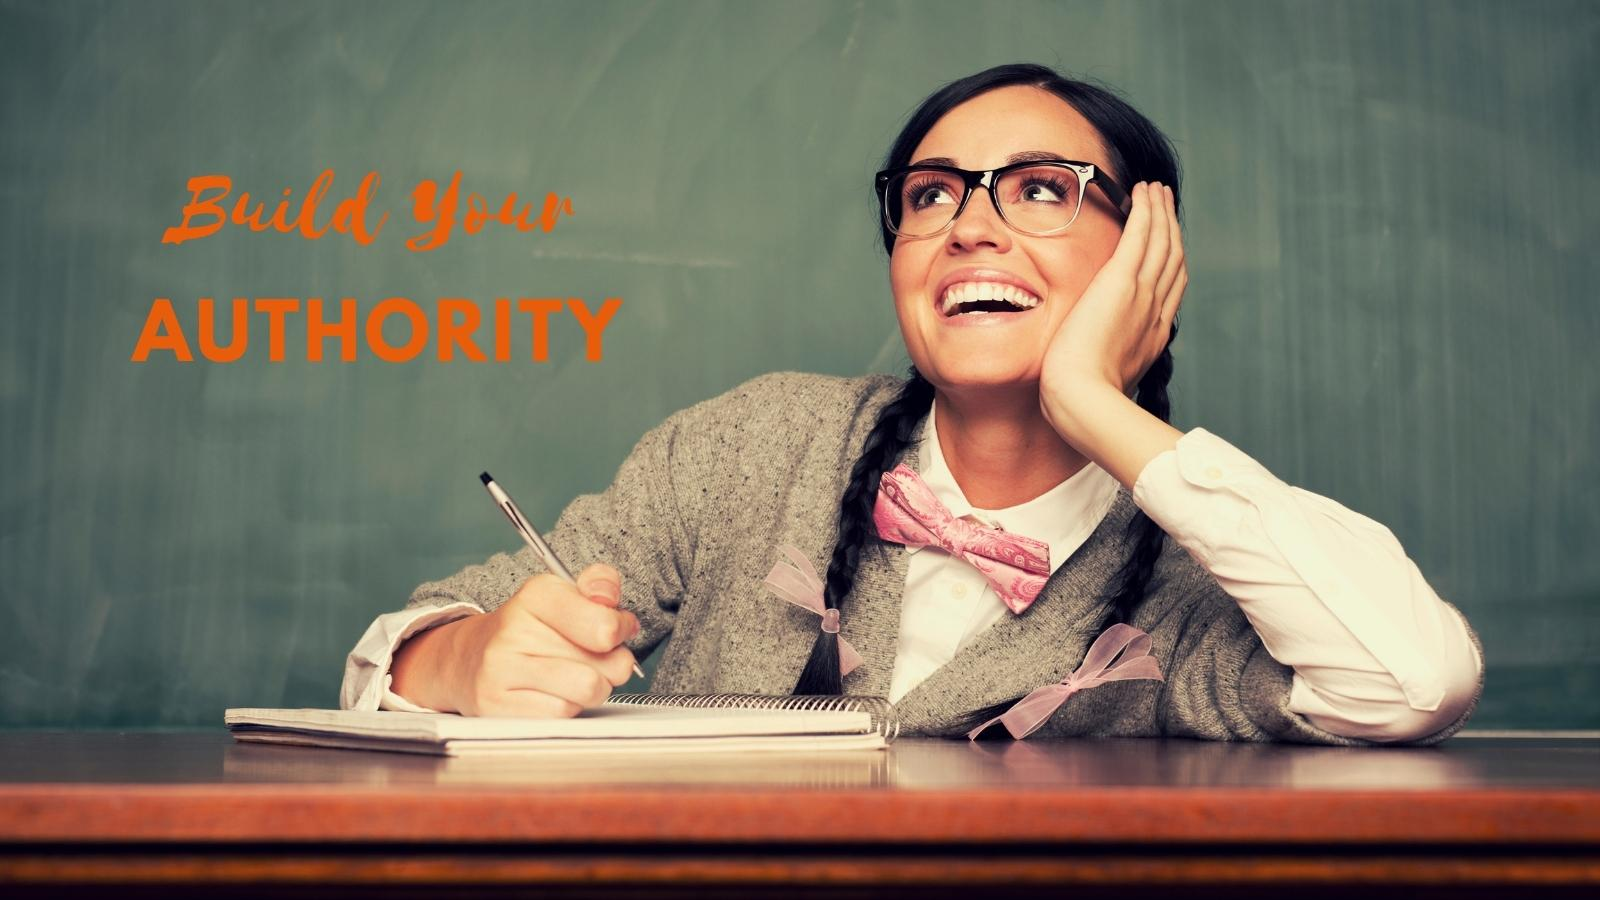 stand out as a legit authority online